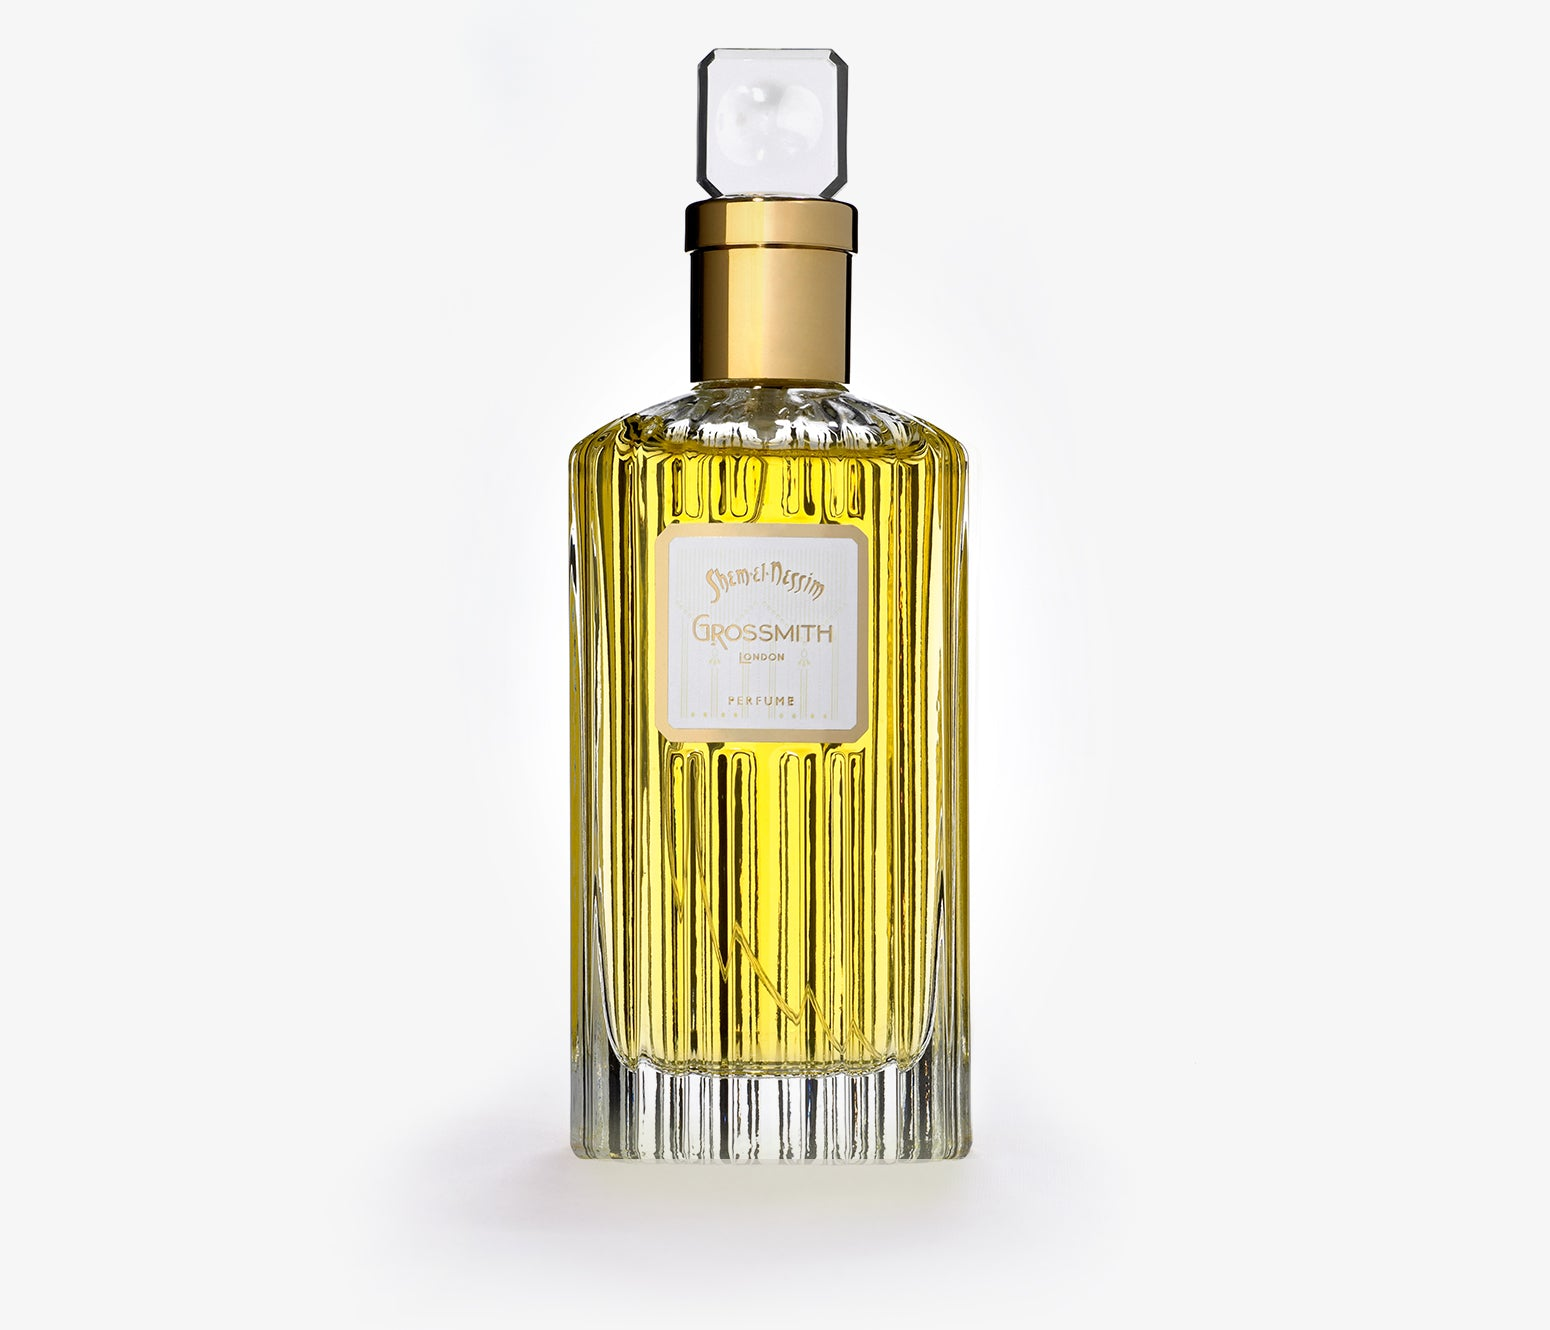 Grossmith London - Shem-el-Nessim - 50ml - BET4249 - product image - Fragrance - Les Senteurs